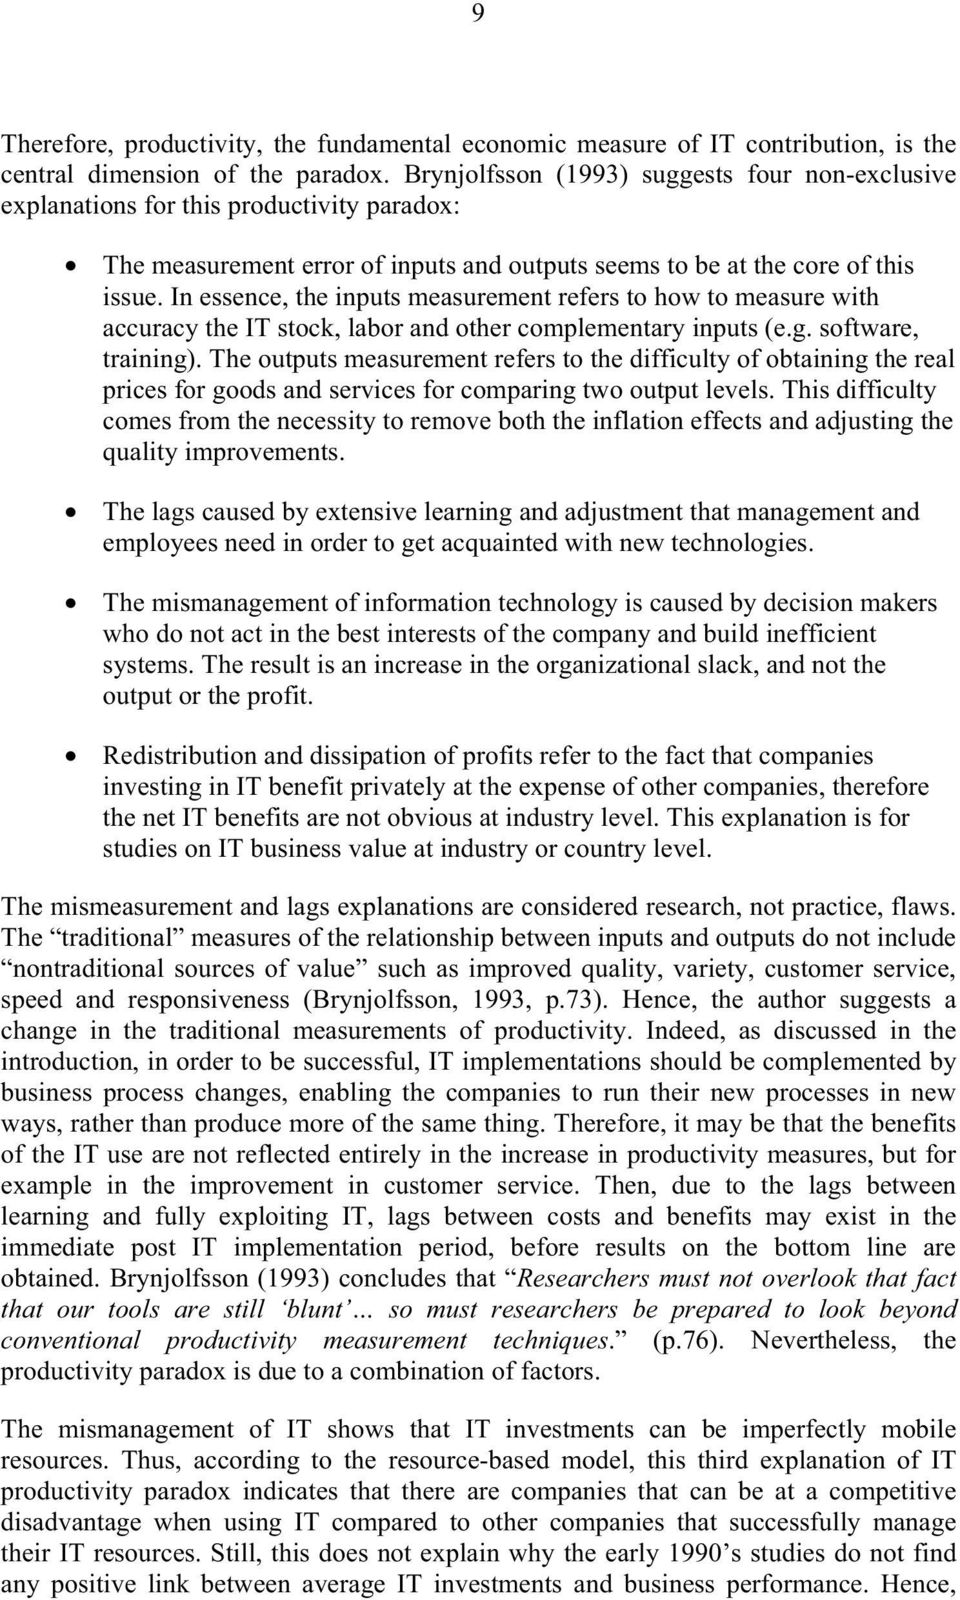 Drivers Of Erp Systems Business Value Pdf Free Download